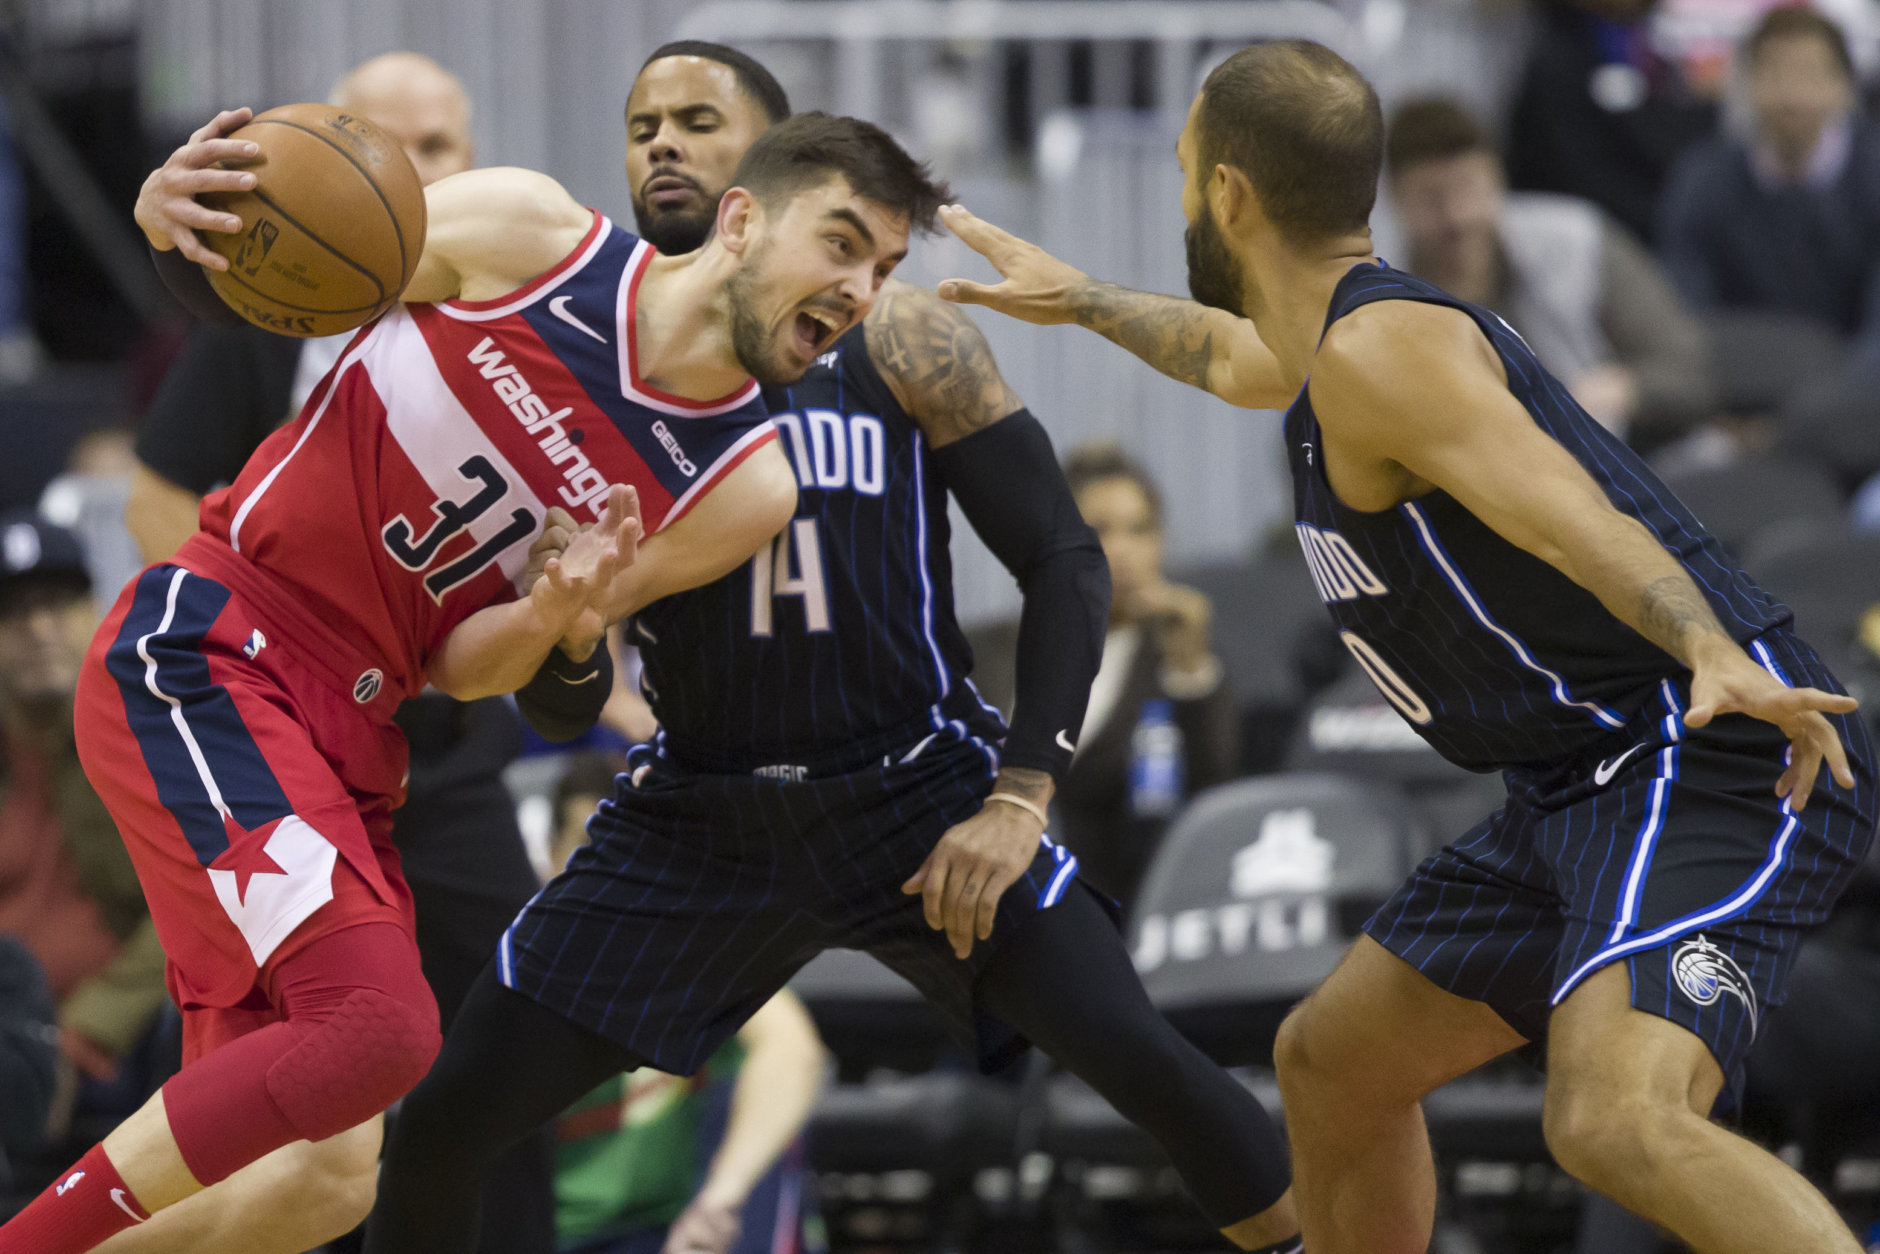 Washington Wizards guard Tomas Satoransky, left, from the Czech Republic, drives against Orlando Magic guards D.J. Augustin and Evan Fournier, right, from France, during the first half of an NBA basketball game Wednesday, March 13, 2019, in Washington. (AP Photo/Alex Brandon)